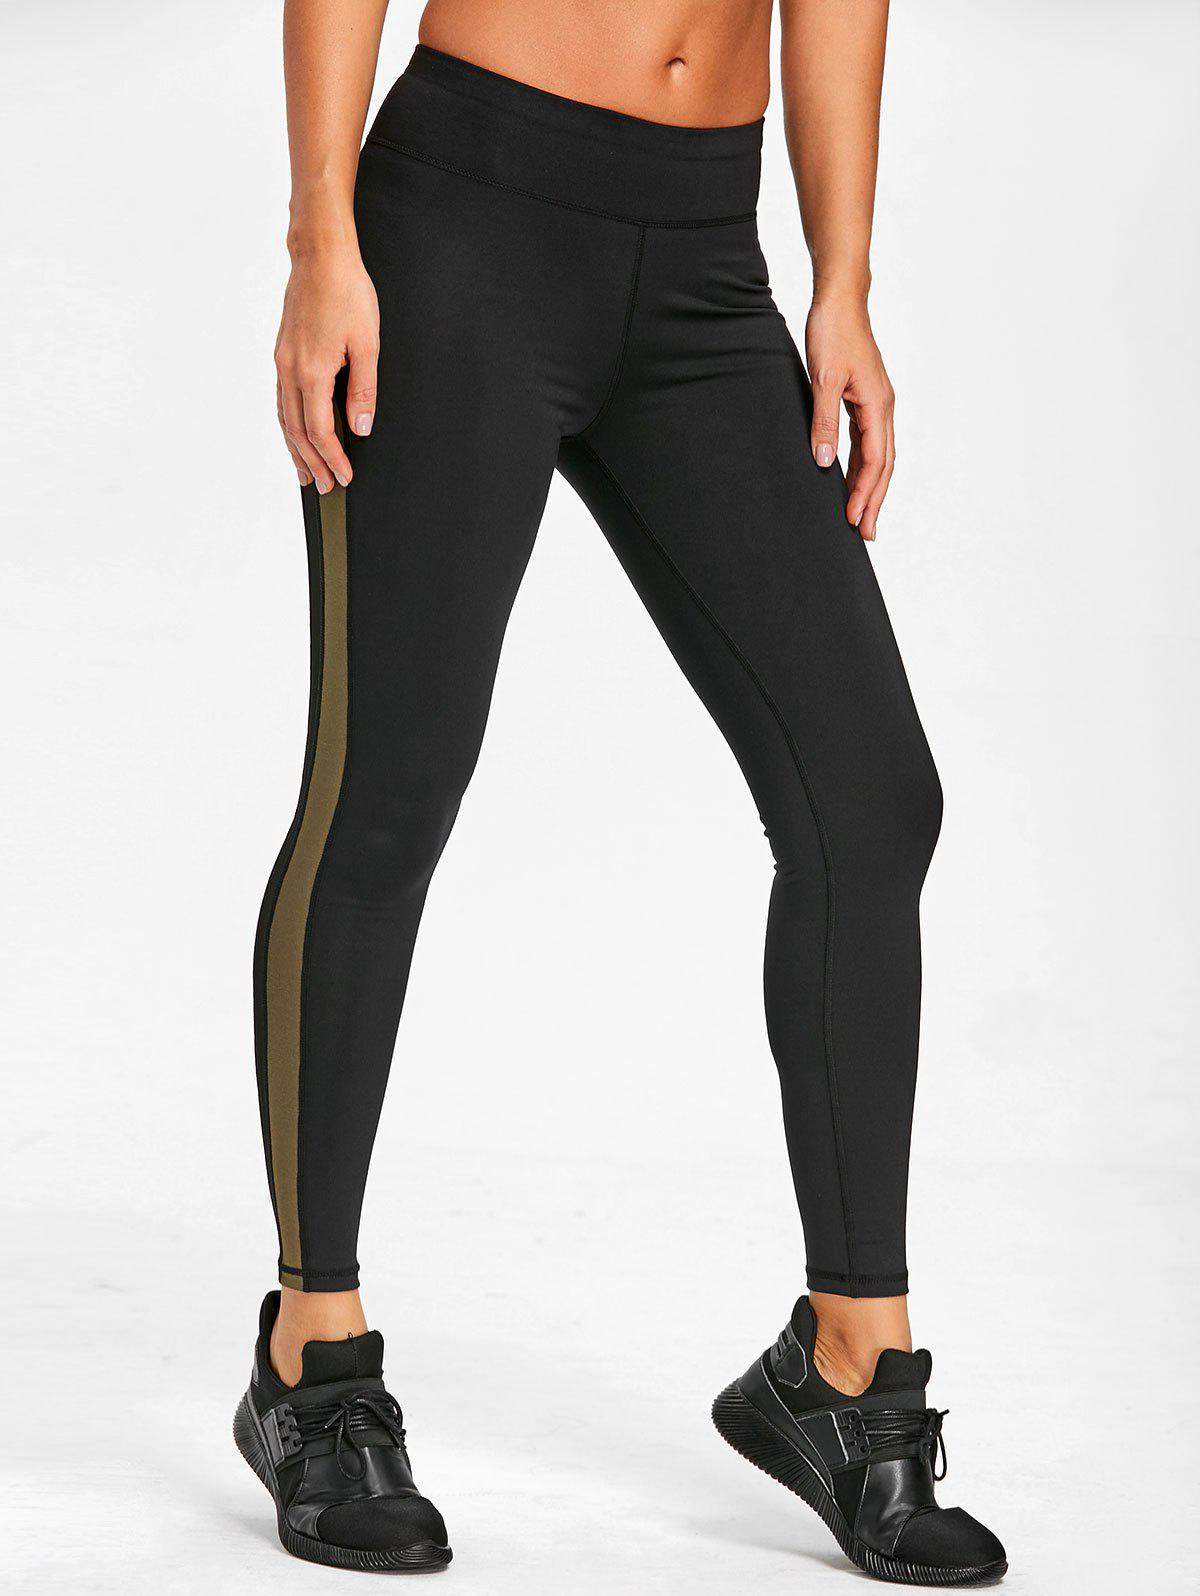 Mesh Insert Sports Leggings 257740601